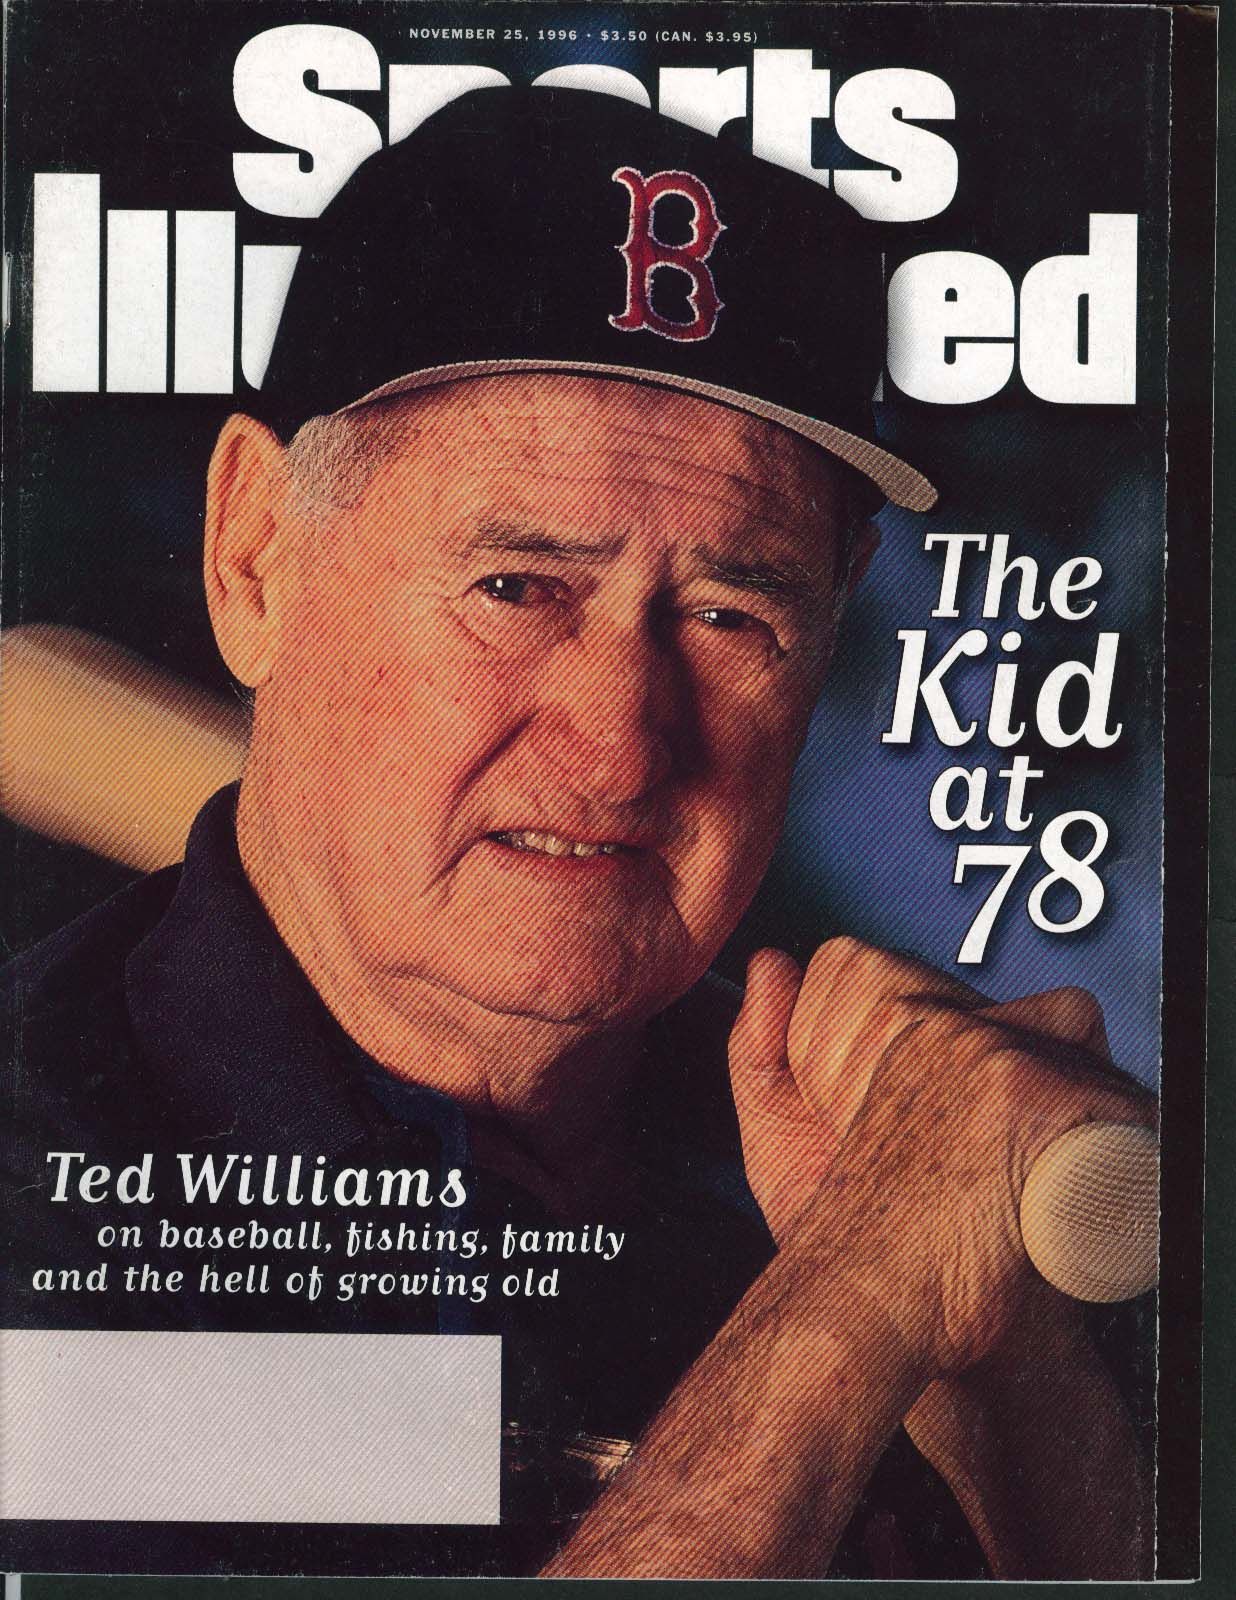 SPORTS ILLUSTRATED Ted Williams Andy Katzenmoyer Grant Hill 11/25 1996